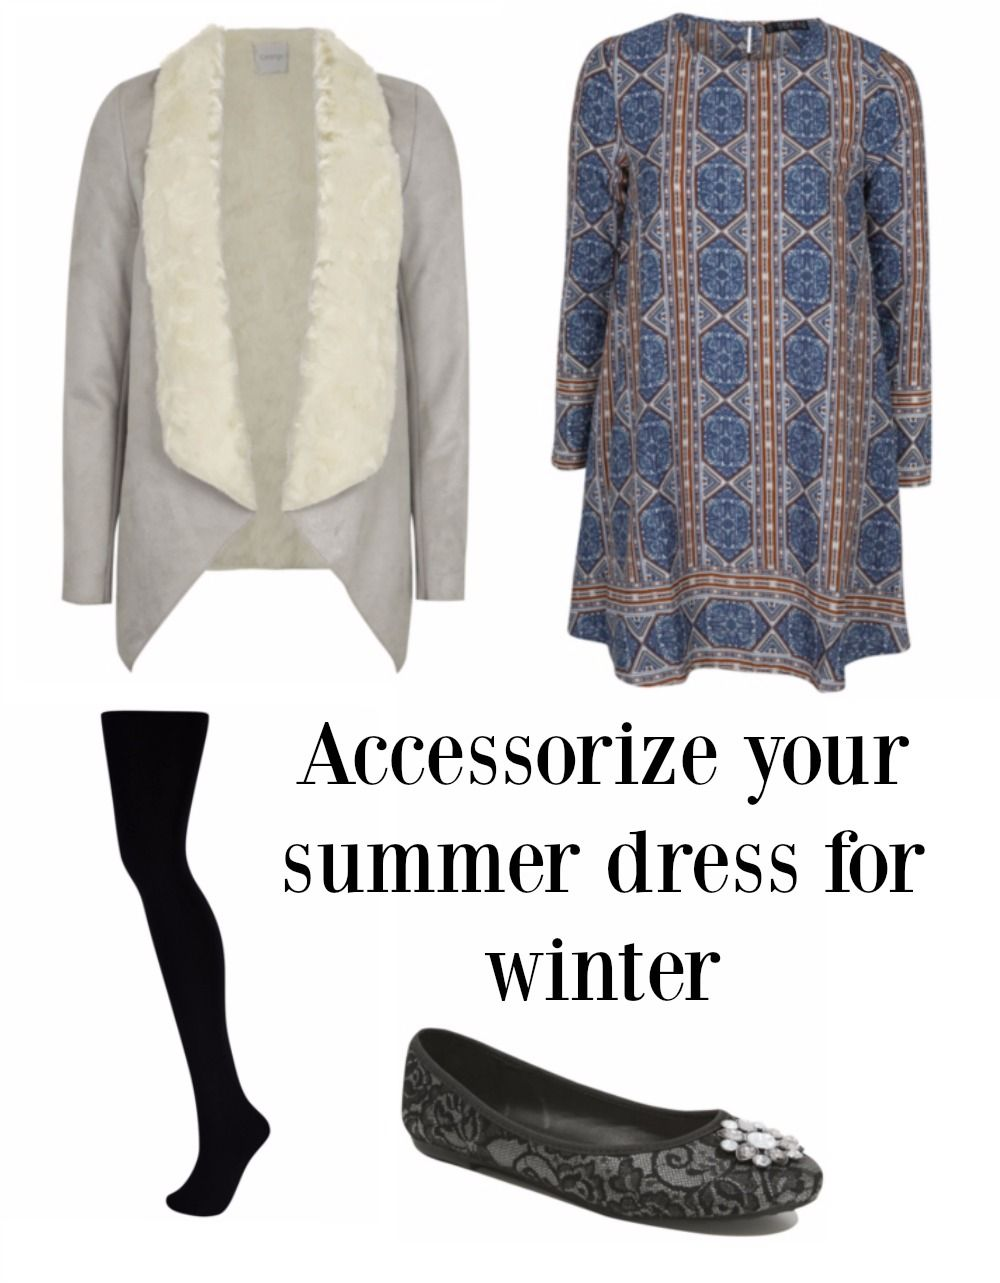 Accessorize your summer dress for winter